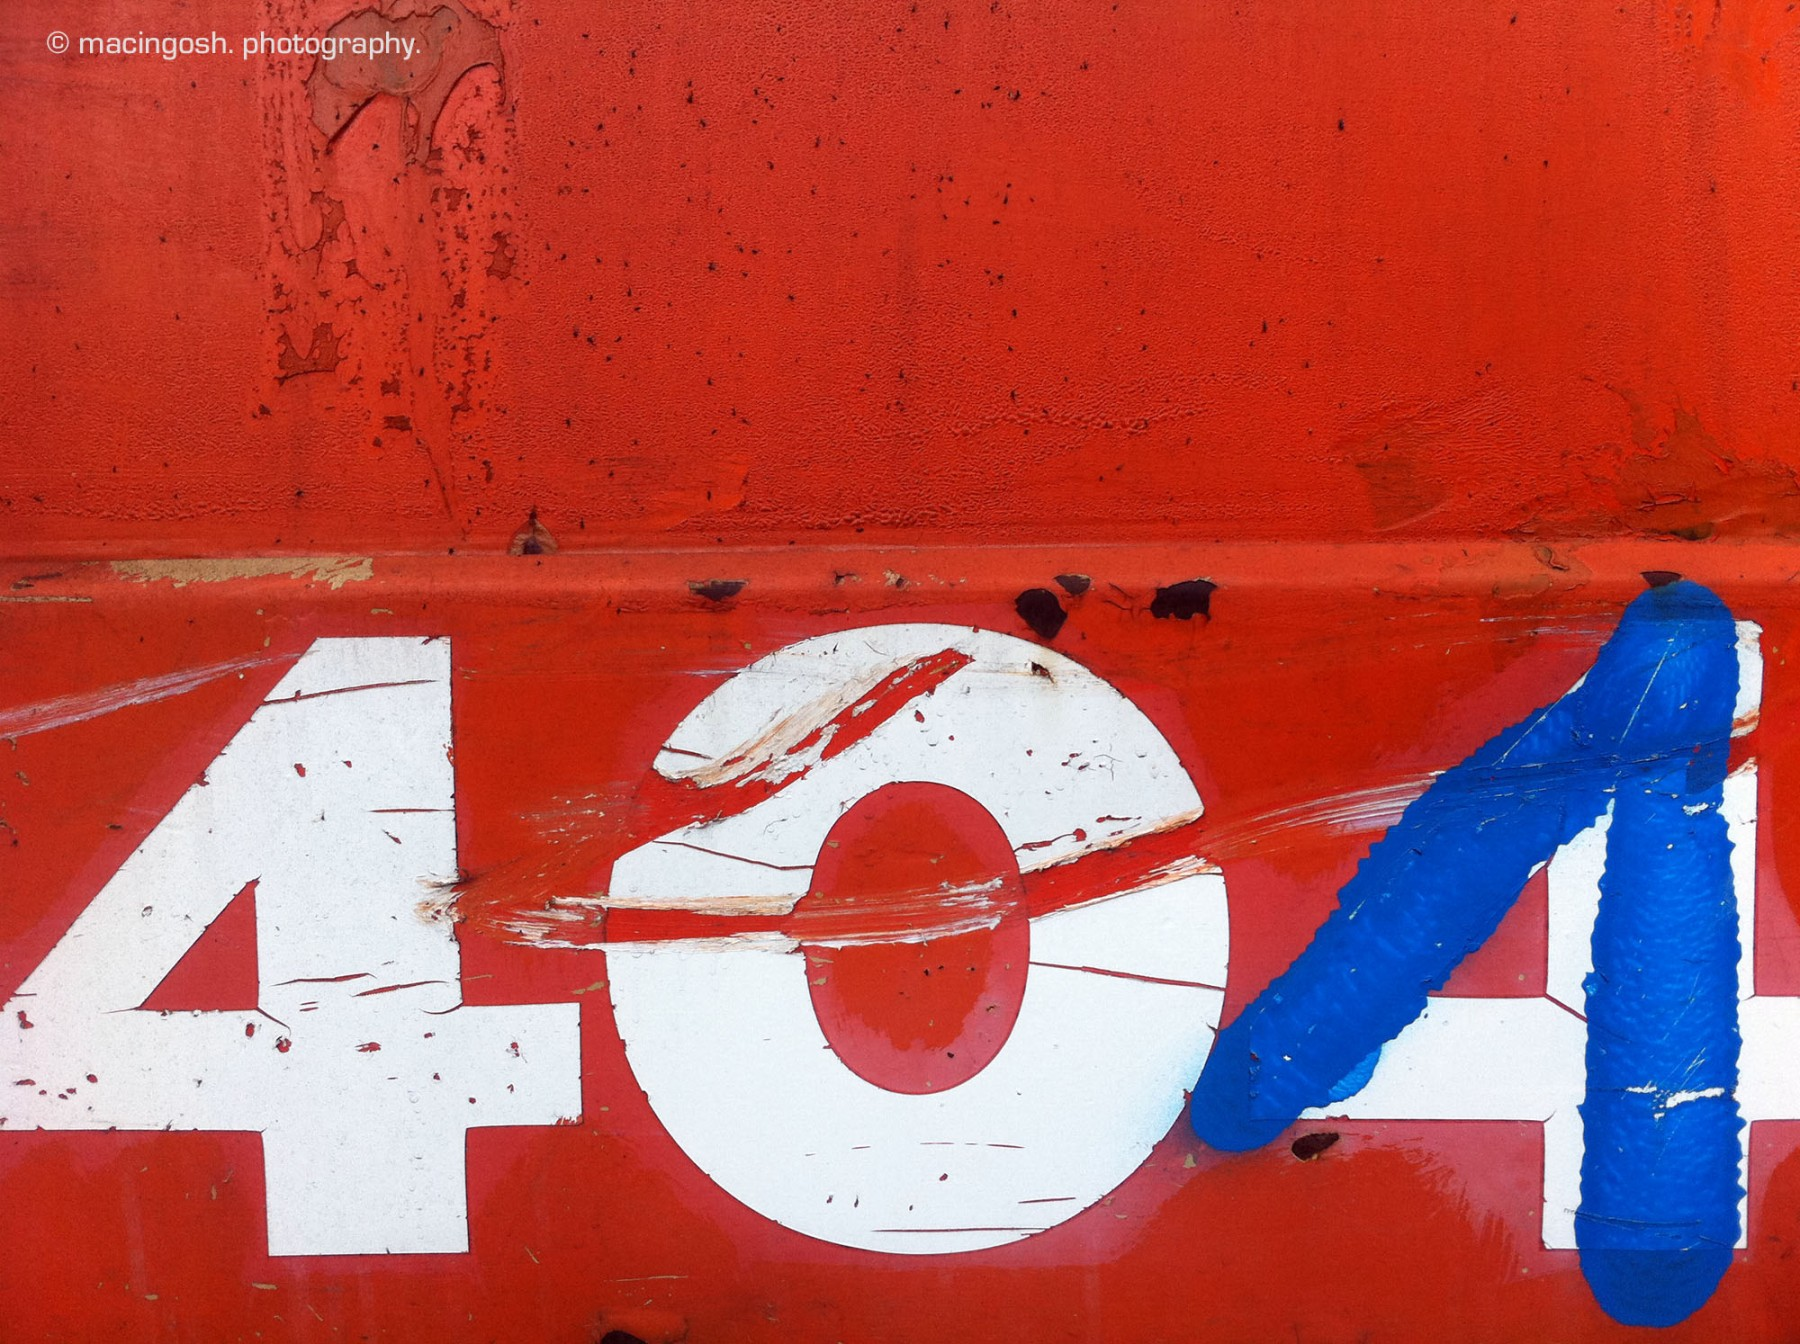 red, white, blue, numbers, 404